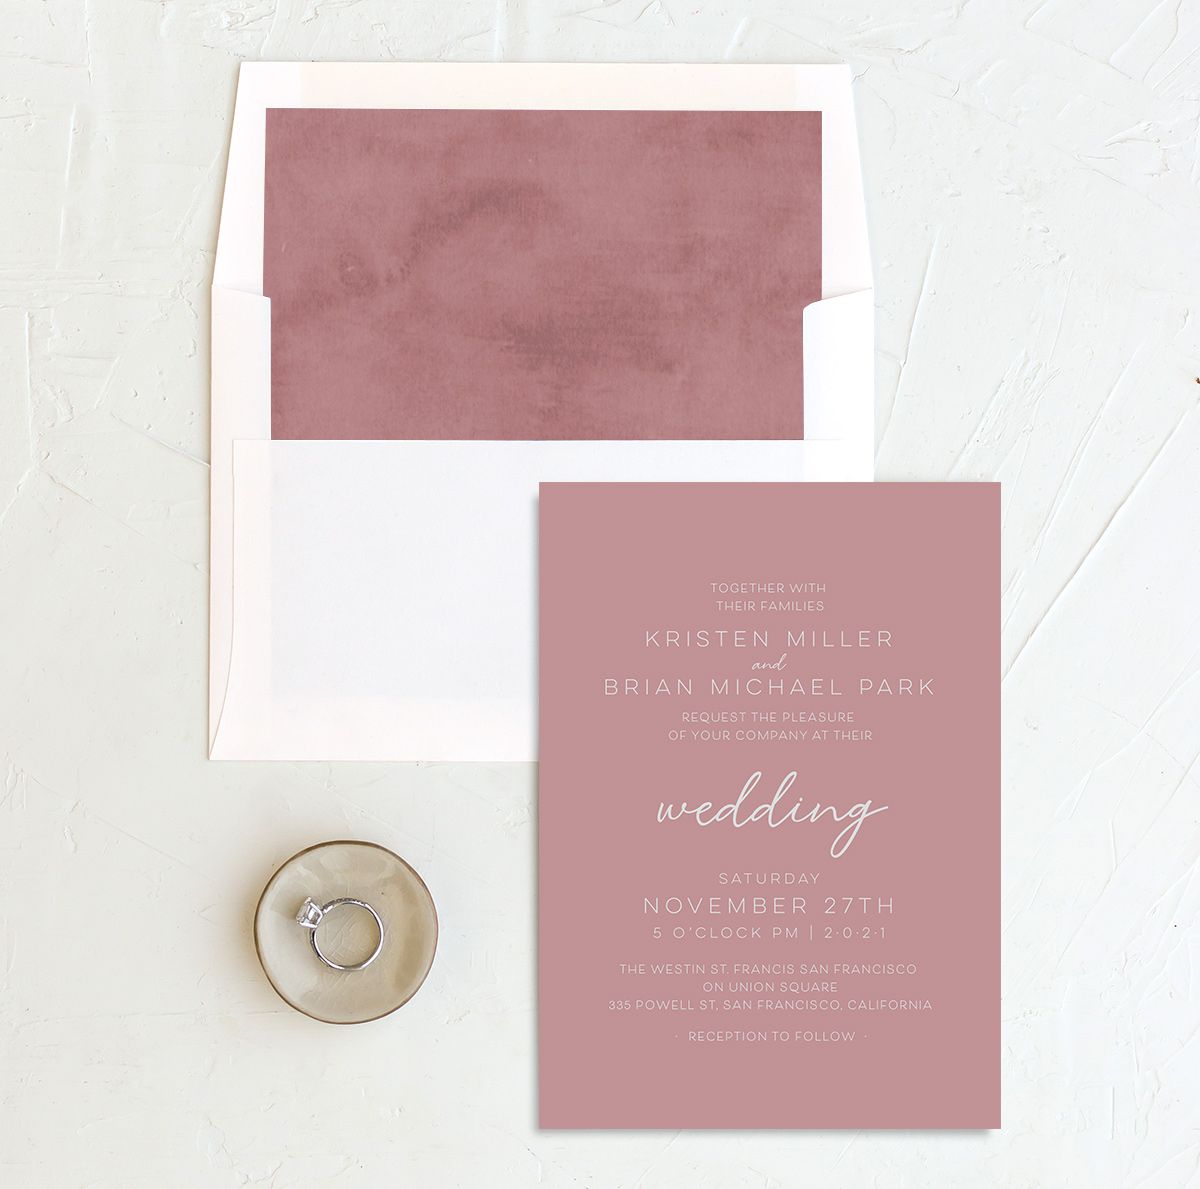 Gold Calligraphy Wedding Invitation and Envelope Liner pink